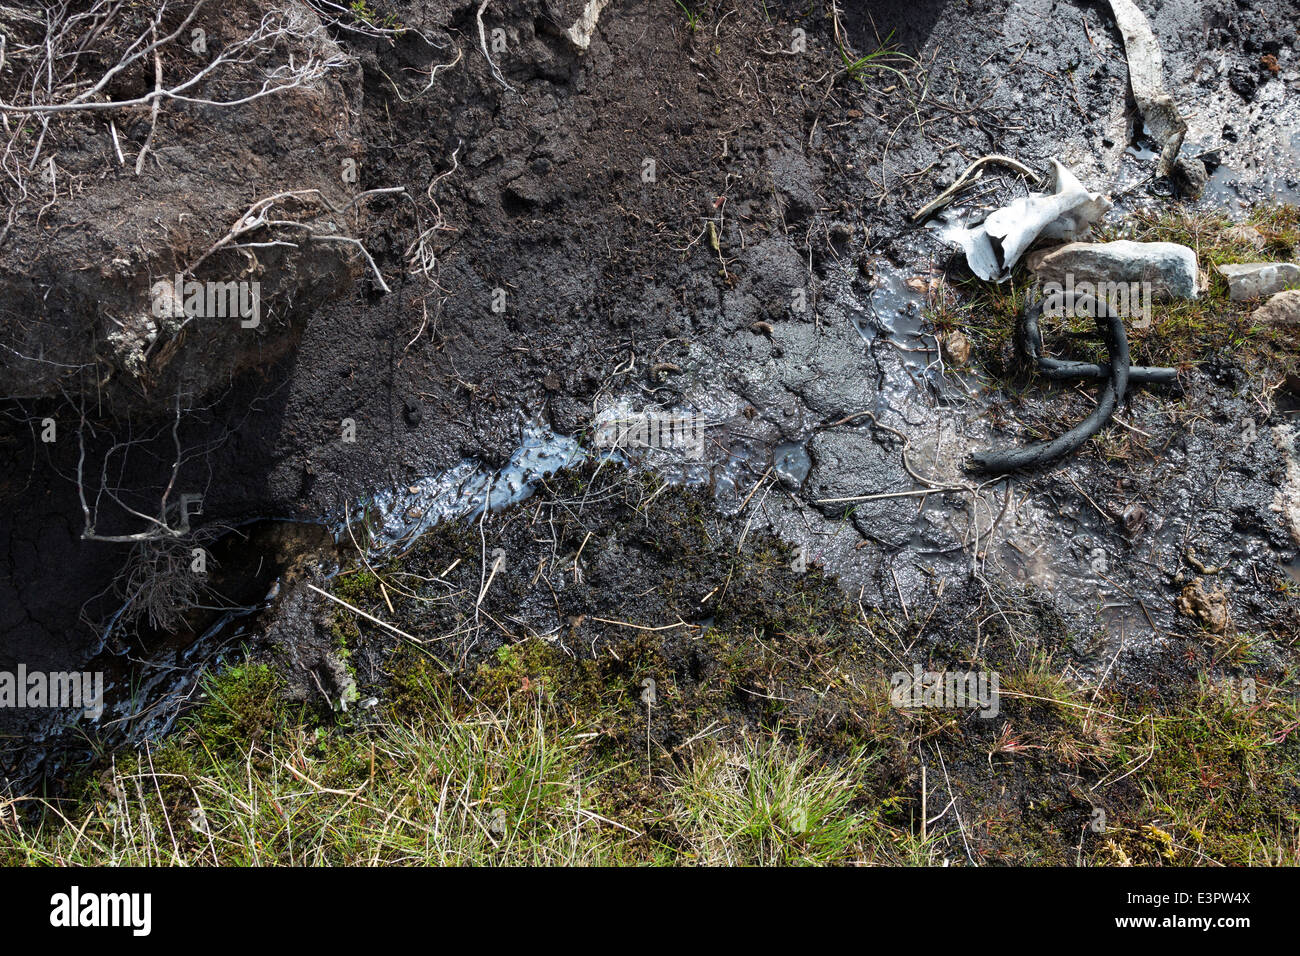 Pollution Leaching Out of the Peat at the Crash Site of a Blenheim Aircraft Which Crashed Here in 1938. Lunedale Stock Photo